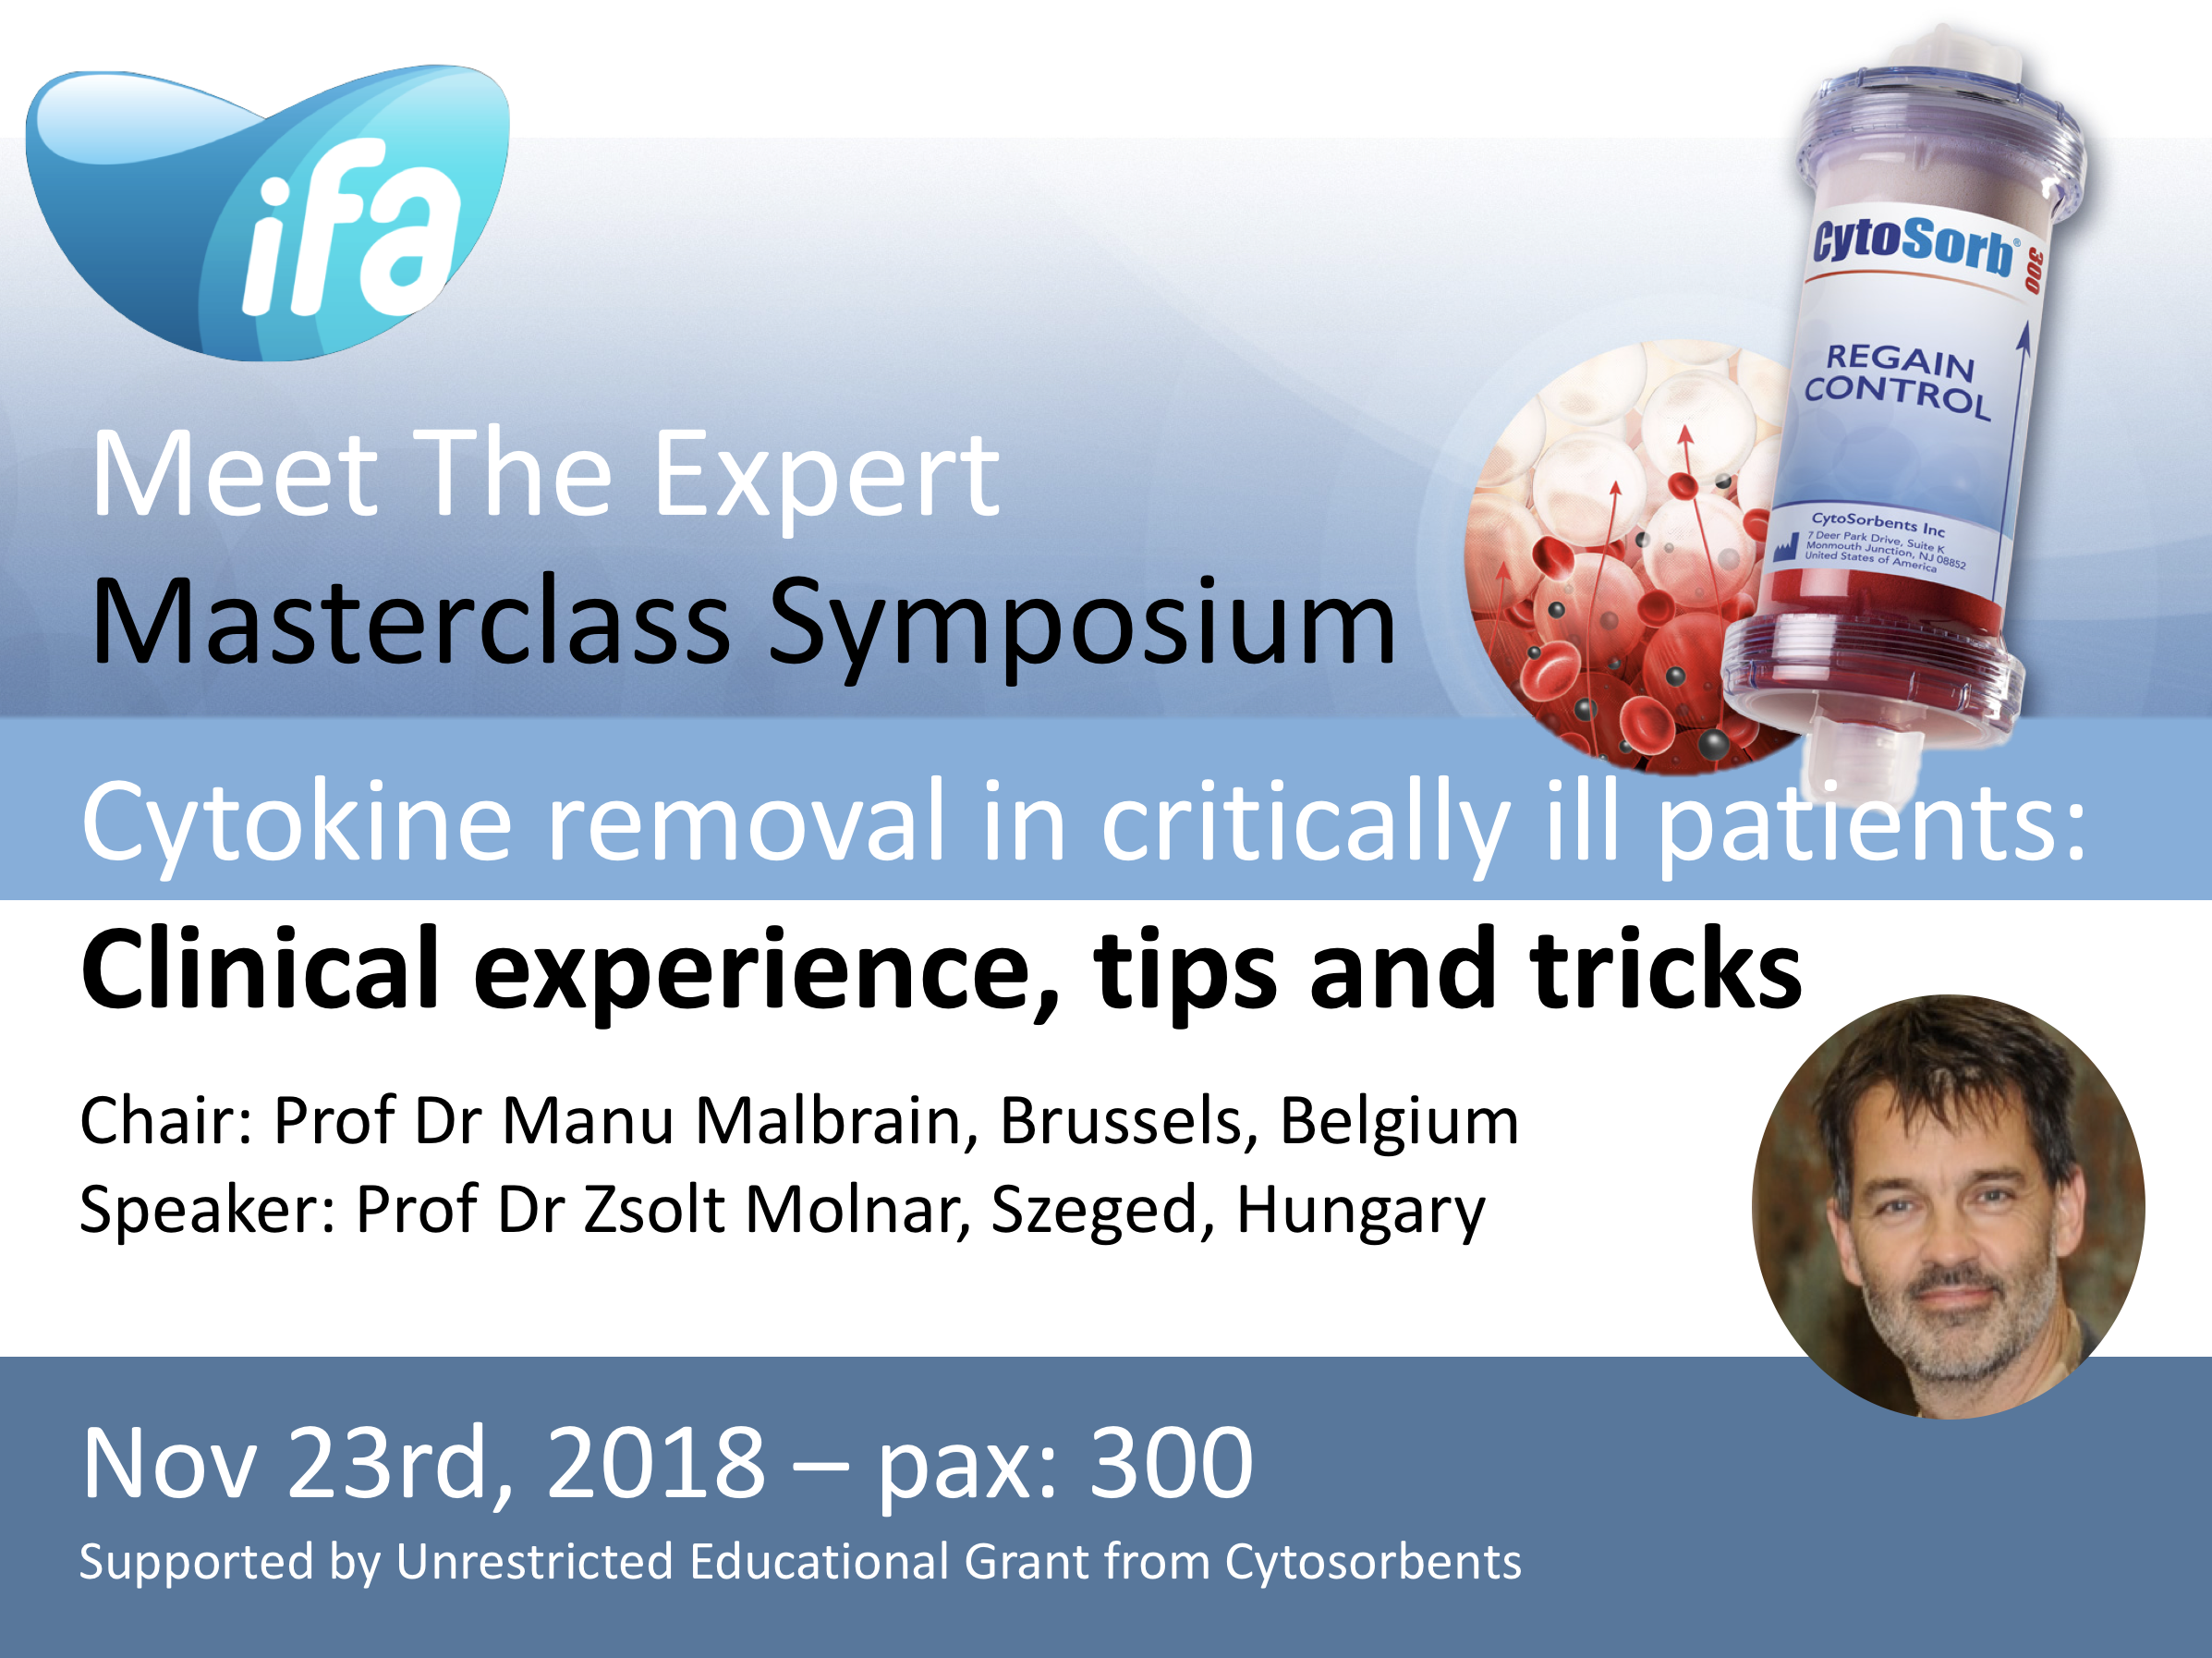 Satellite Masterclass Symposium on Blood Purification